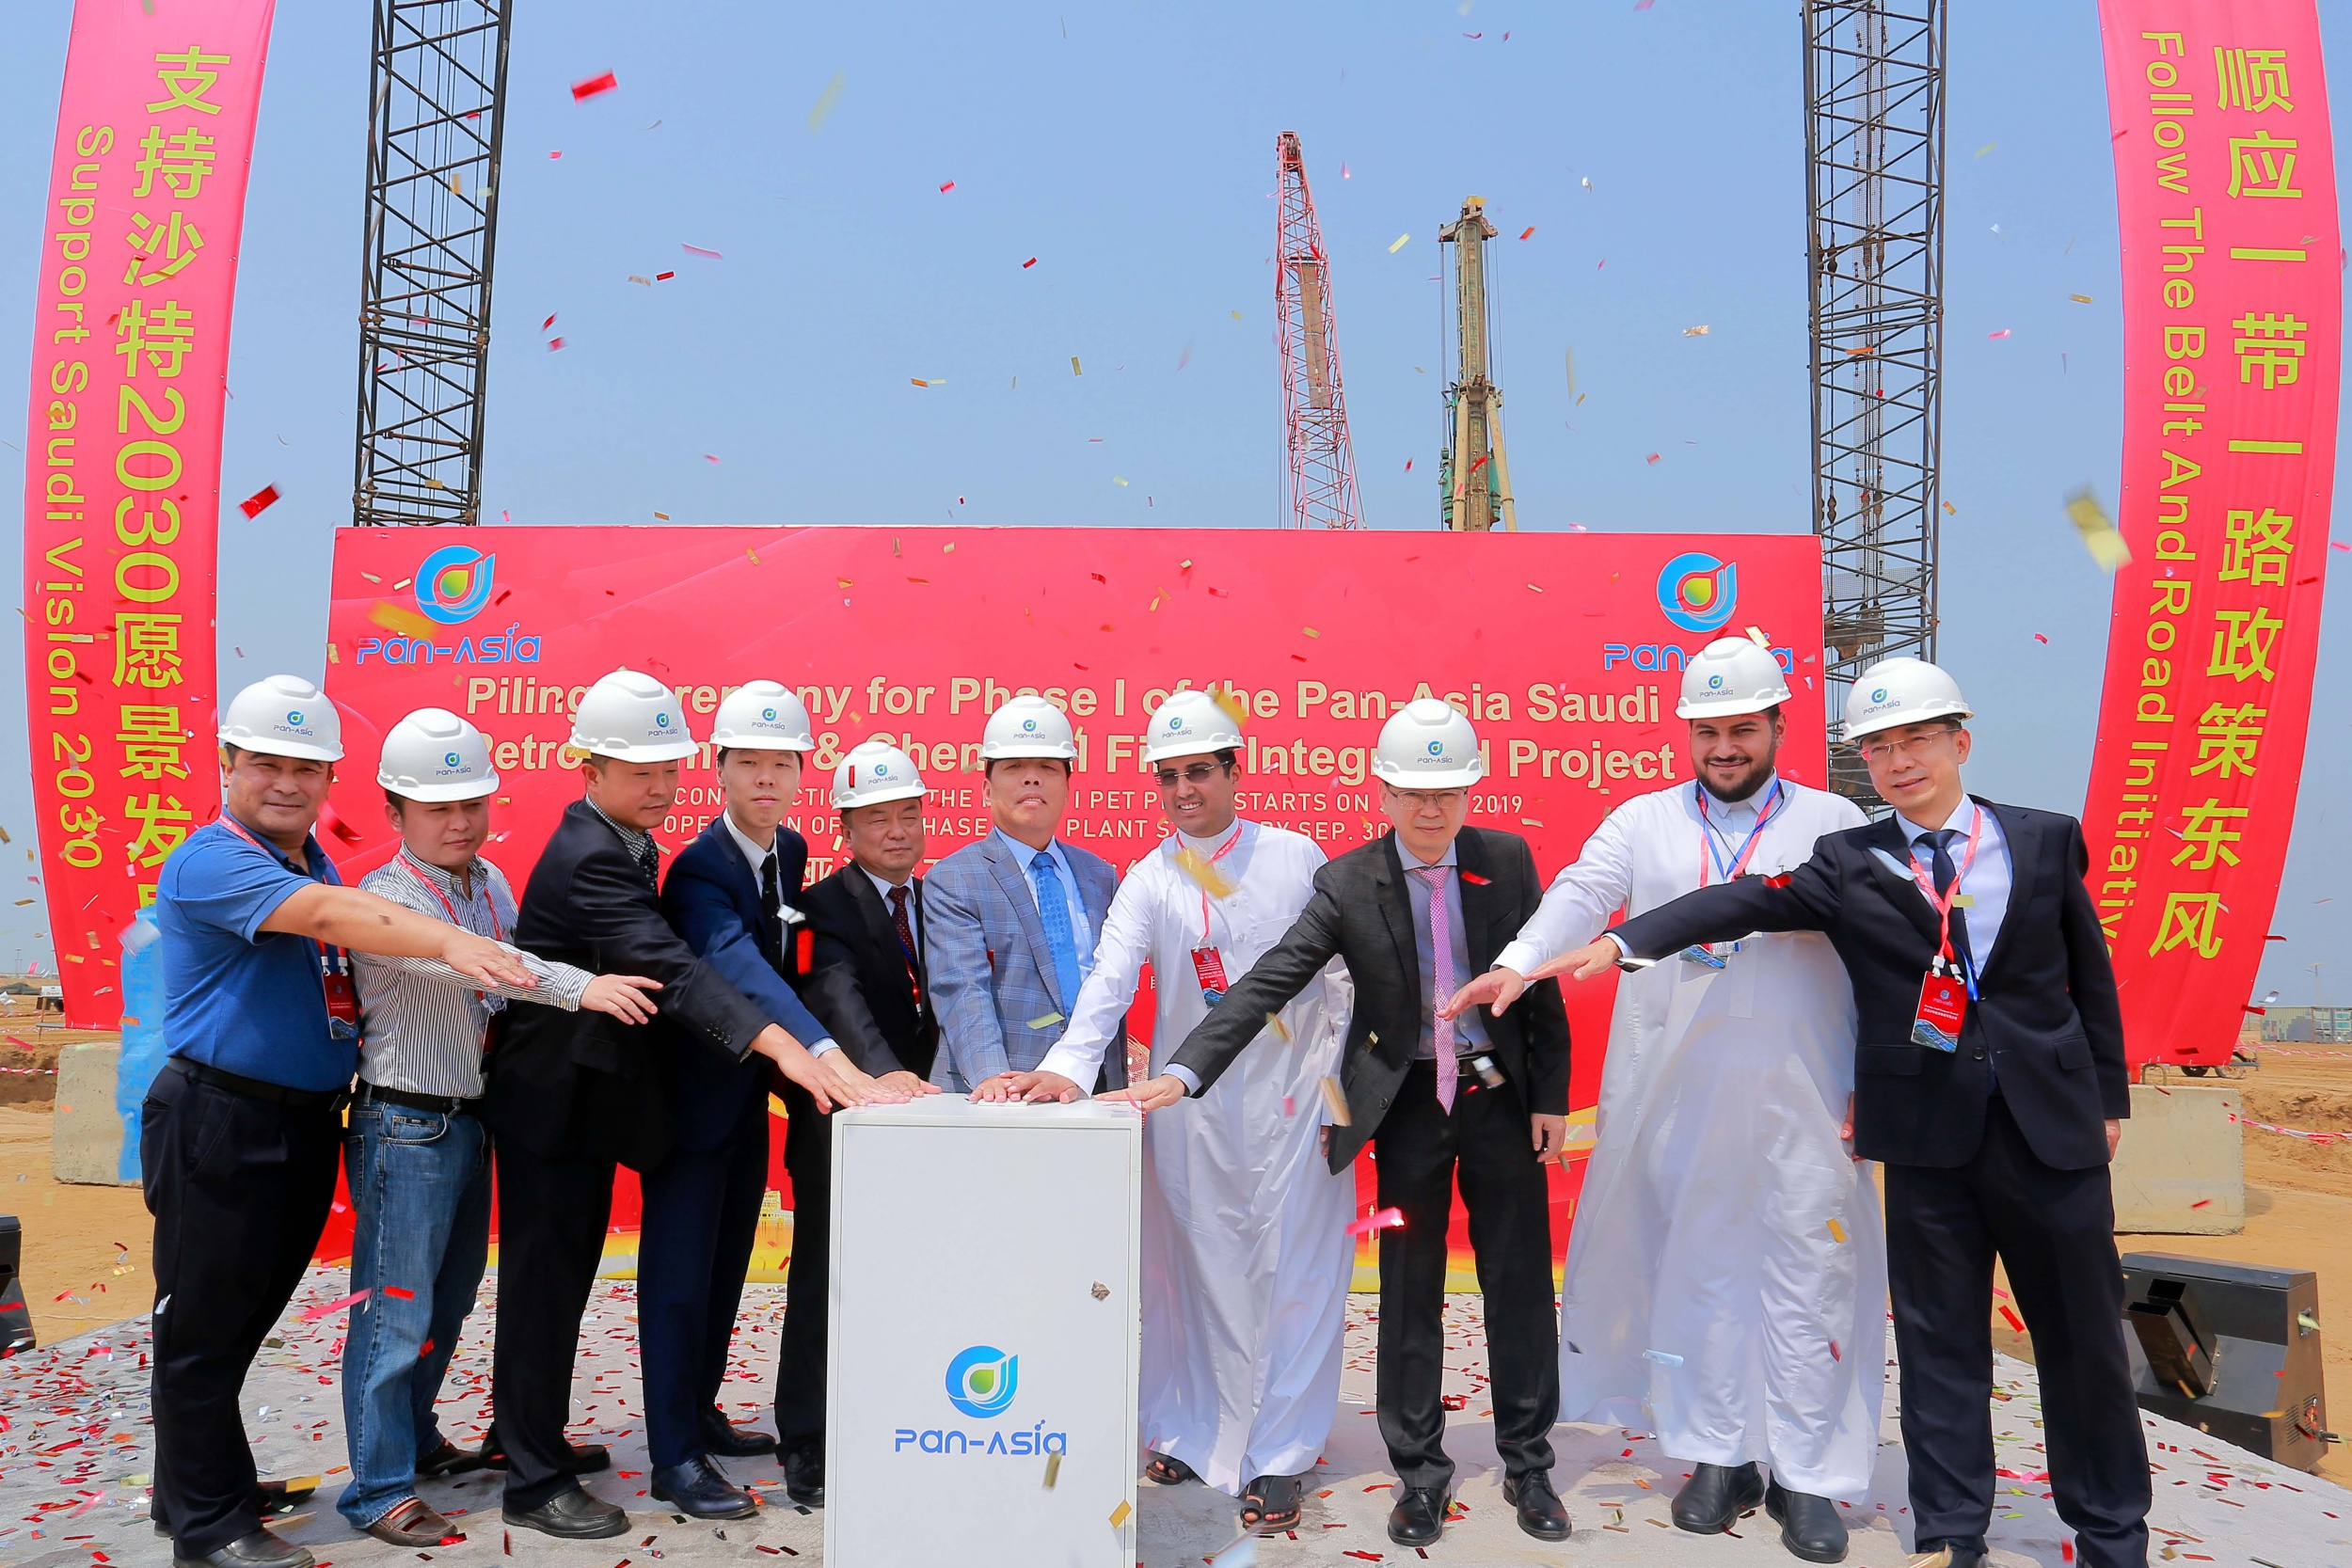 the Piling Ceremony for the Phase I PET Plant of Pan-Asia Saudi Project was held successfully